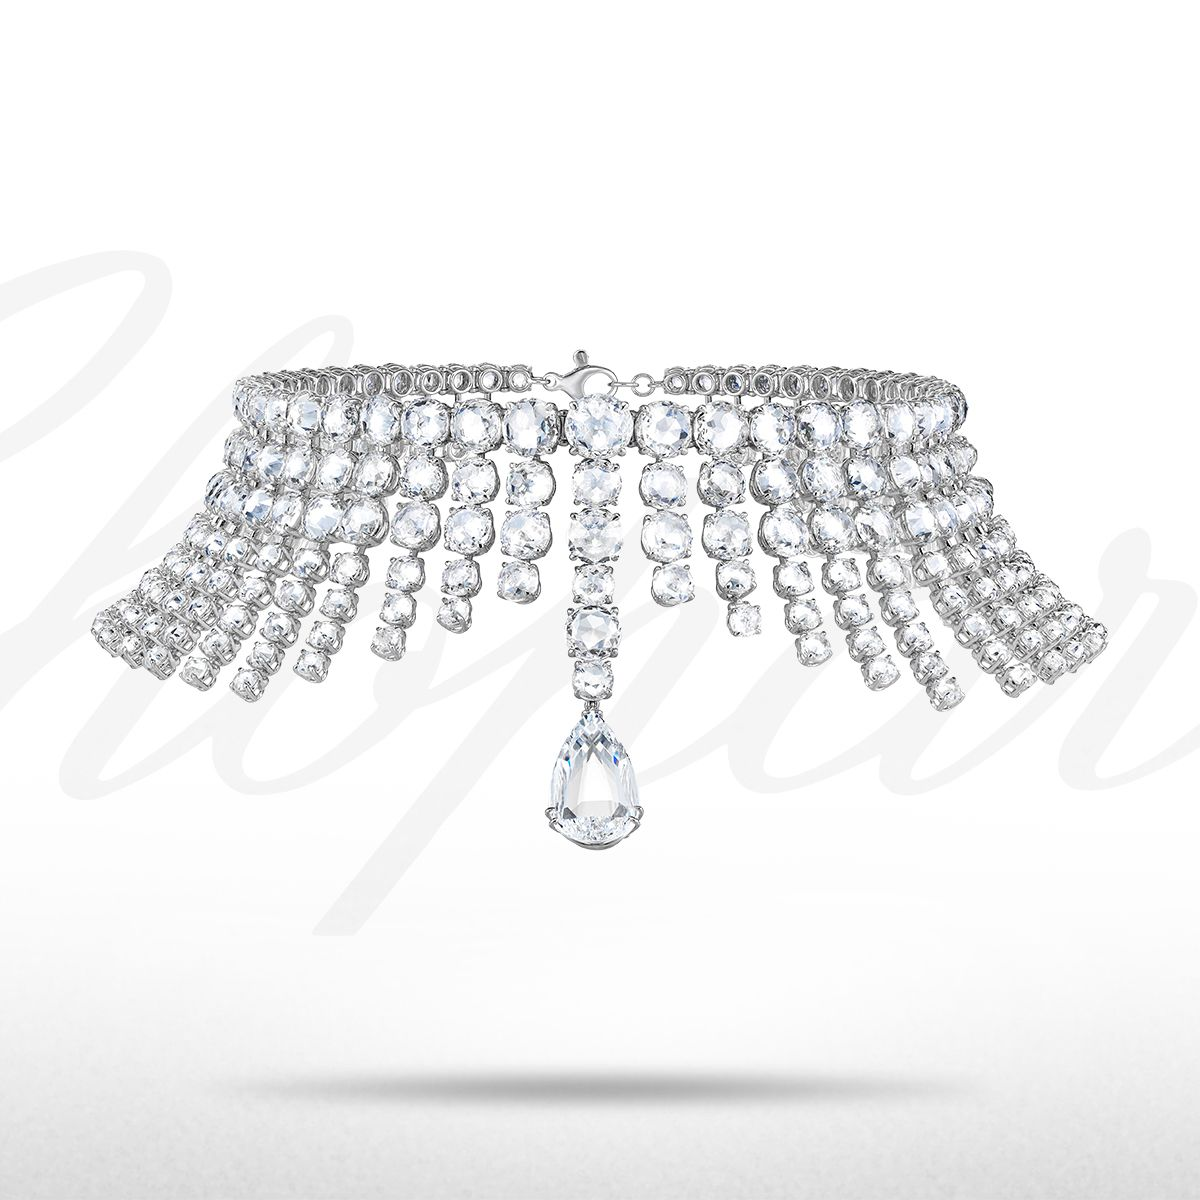 A mesmerizing diamond necklace from the 2013 Red Carpet Collection with a 5-carat pear-cut diamond and 284 rose-cut diamonds totalling almost 183 carats.